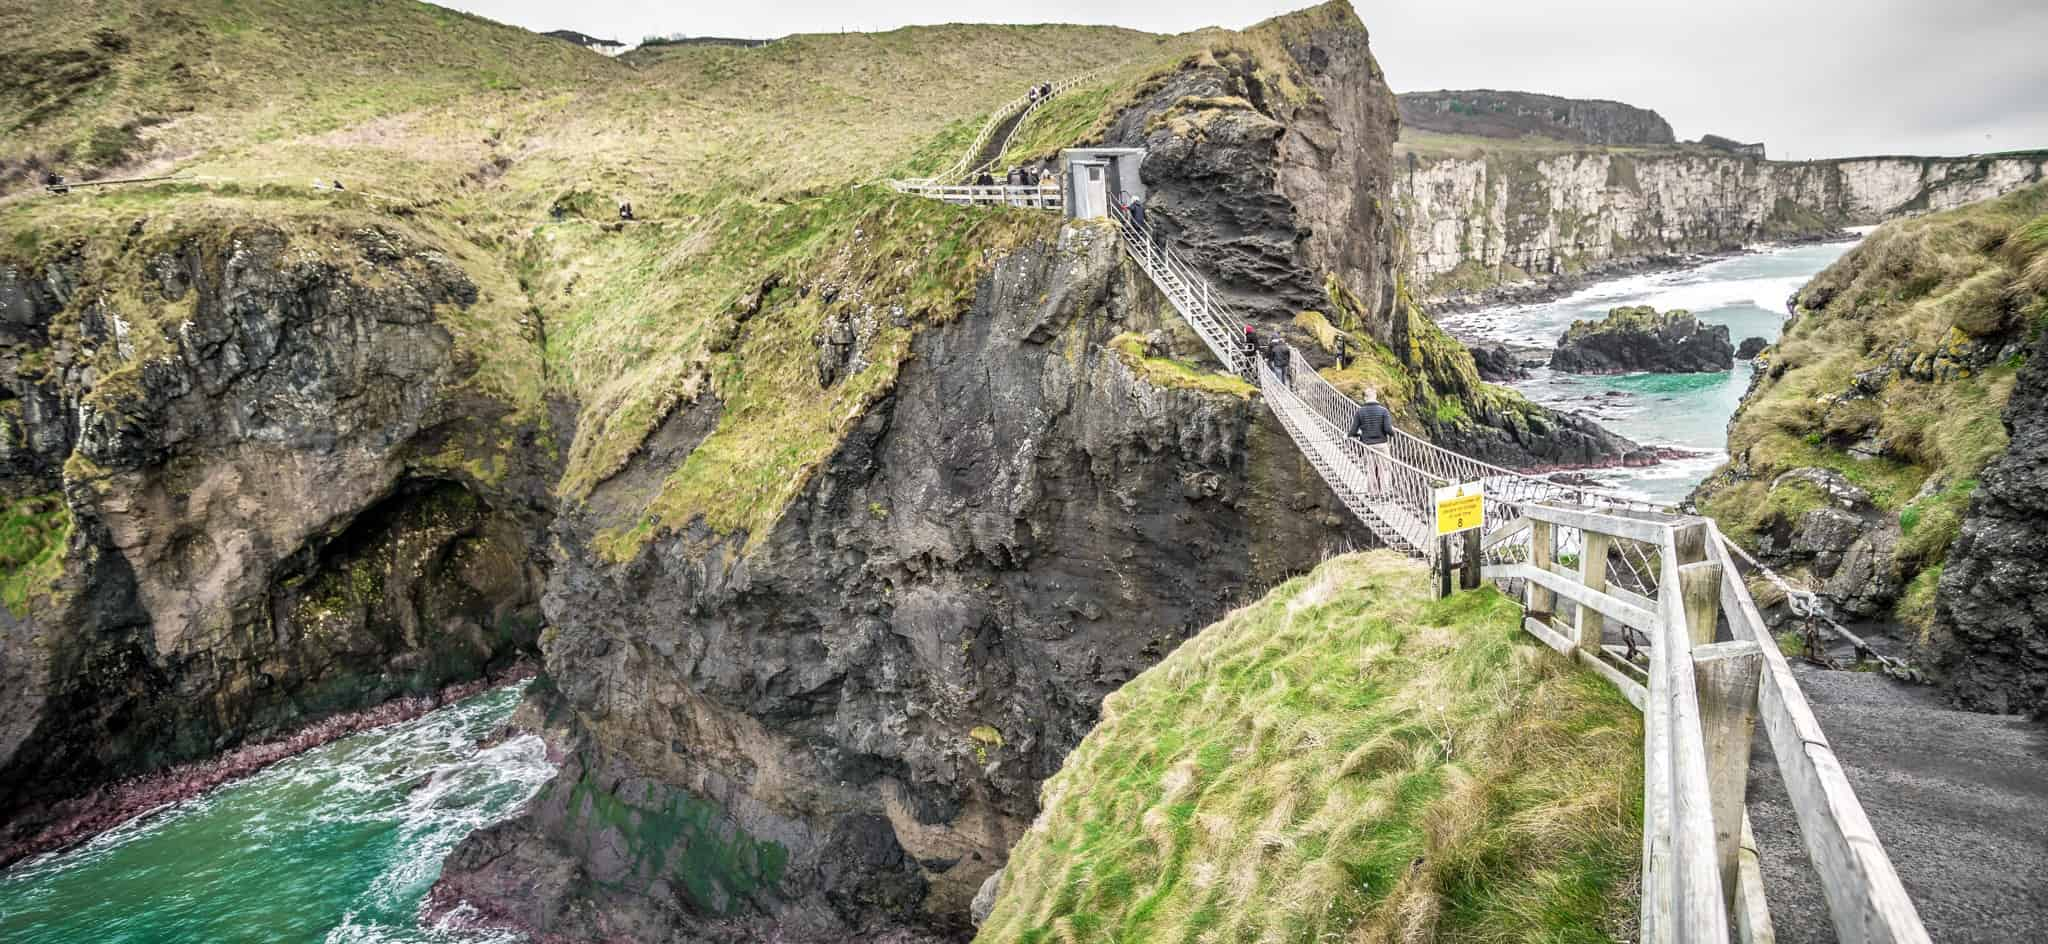 Carrick-a-rede, Northern Ireland